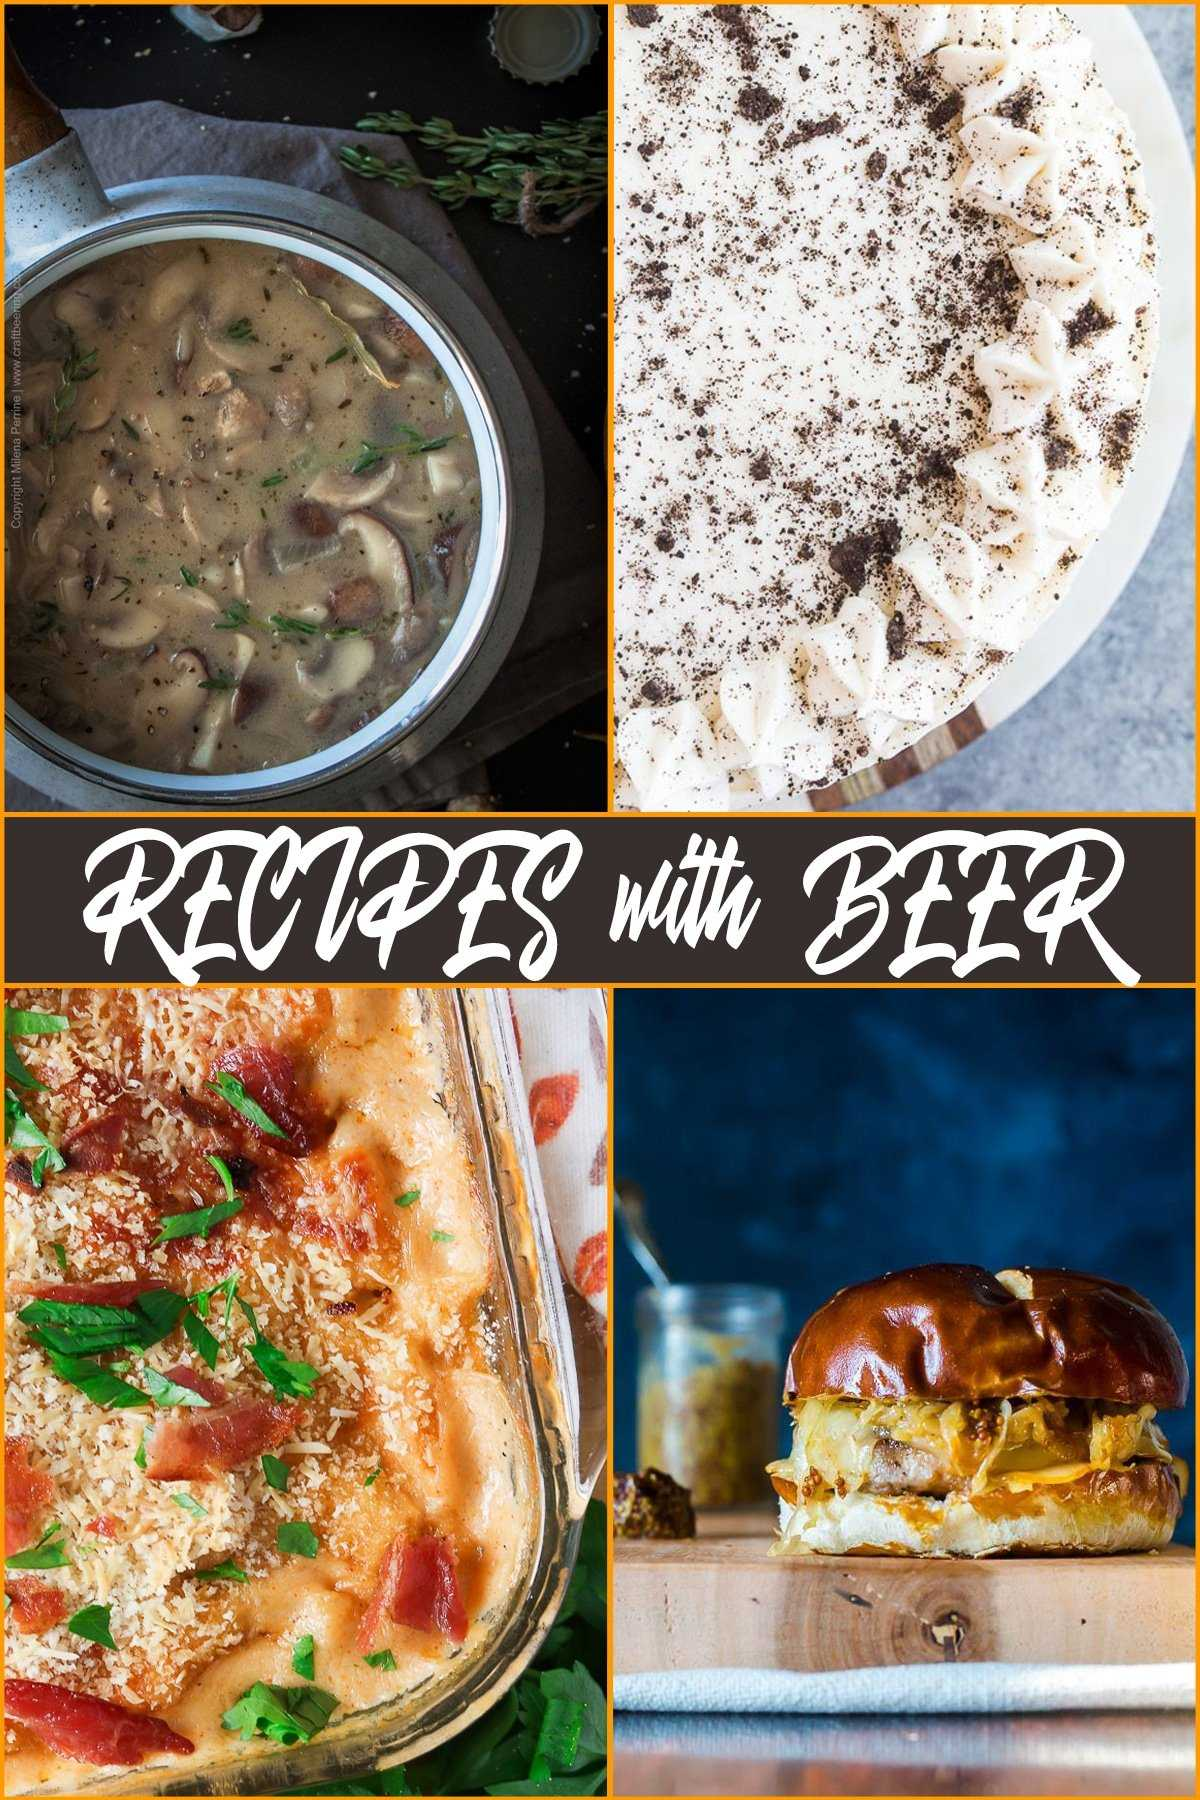 Recipes with Beer Round Up | From soups and appetizers to mains and desserts, cooking with beer is fun and yields delicious results.